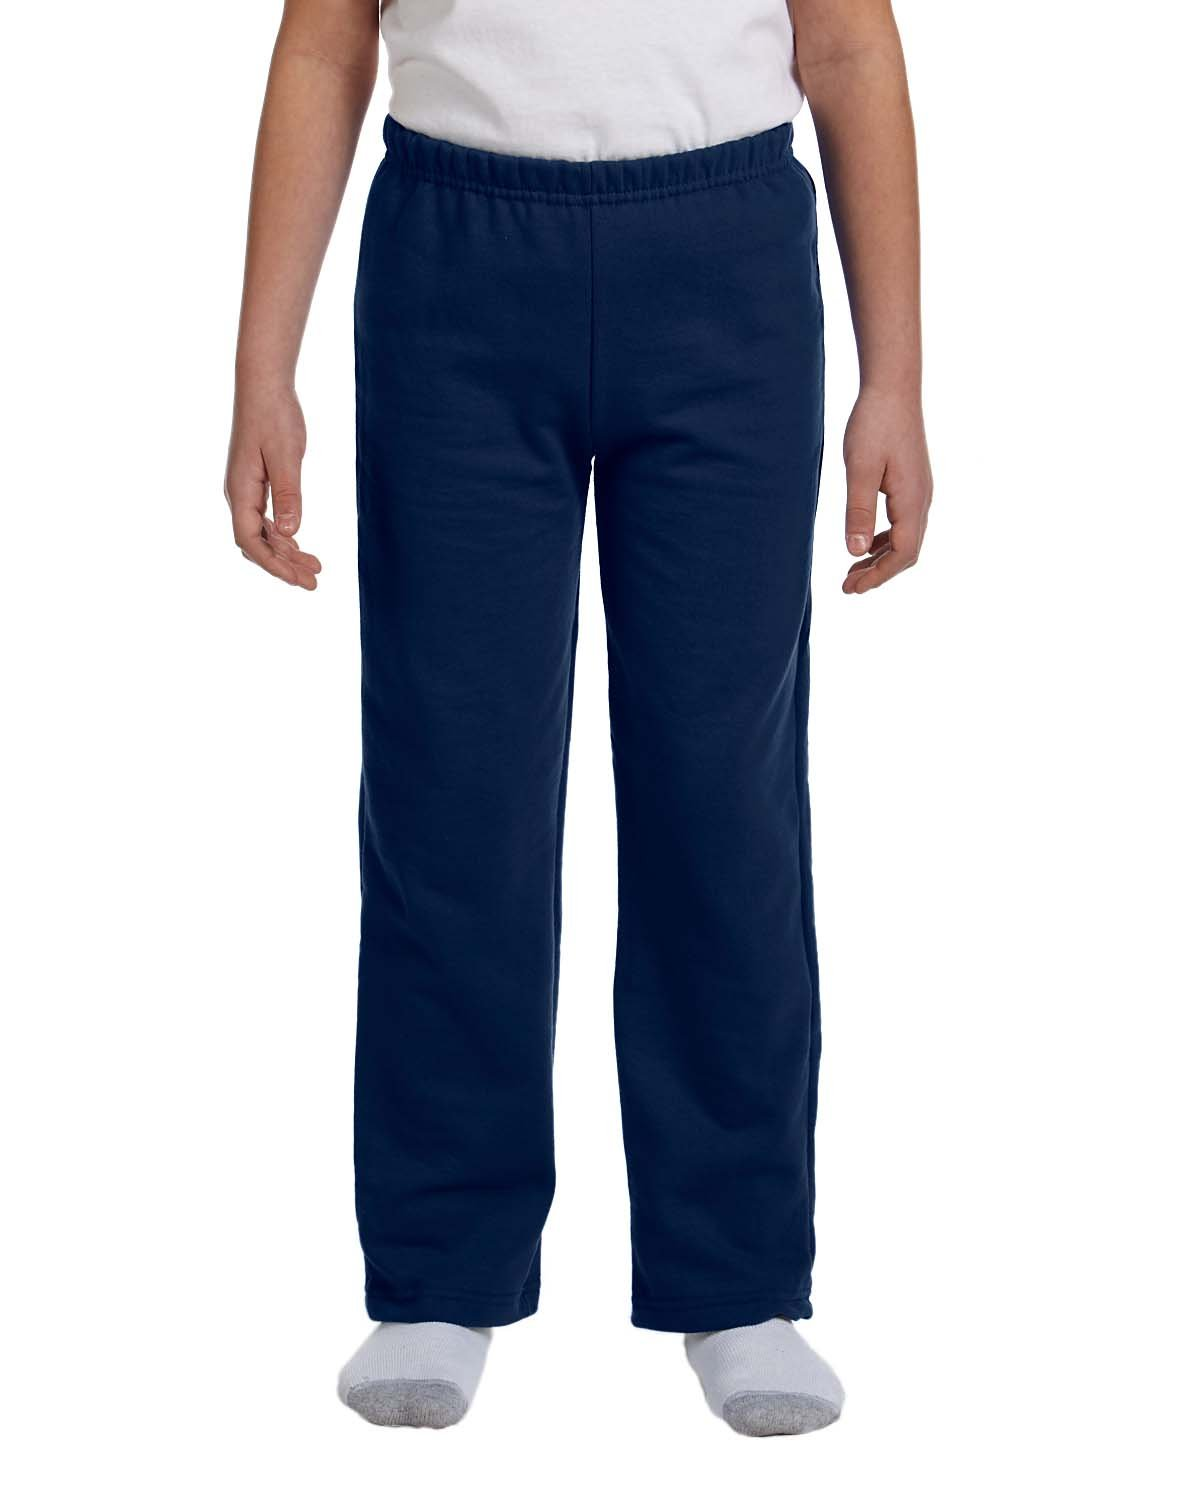 Gildan Boys 7.75 Oz. Heavy Blend 50/50 Sweatpants (G184B) -Navy -M-12PK